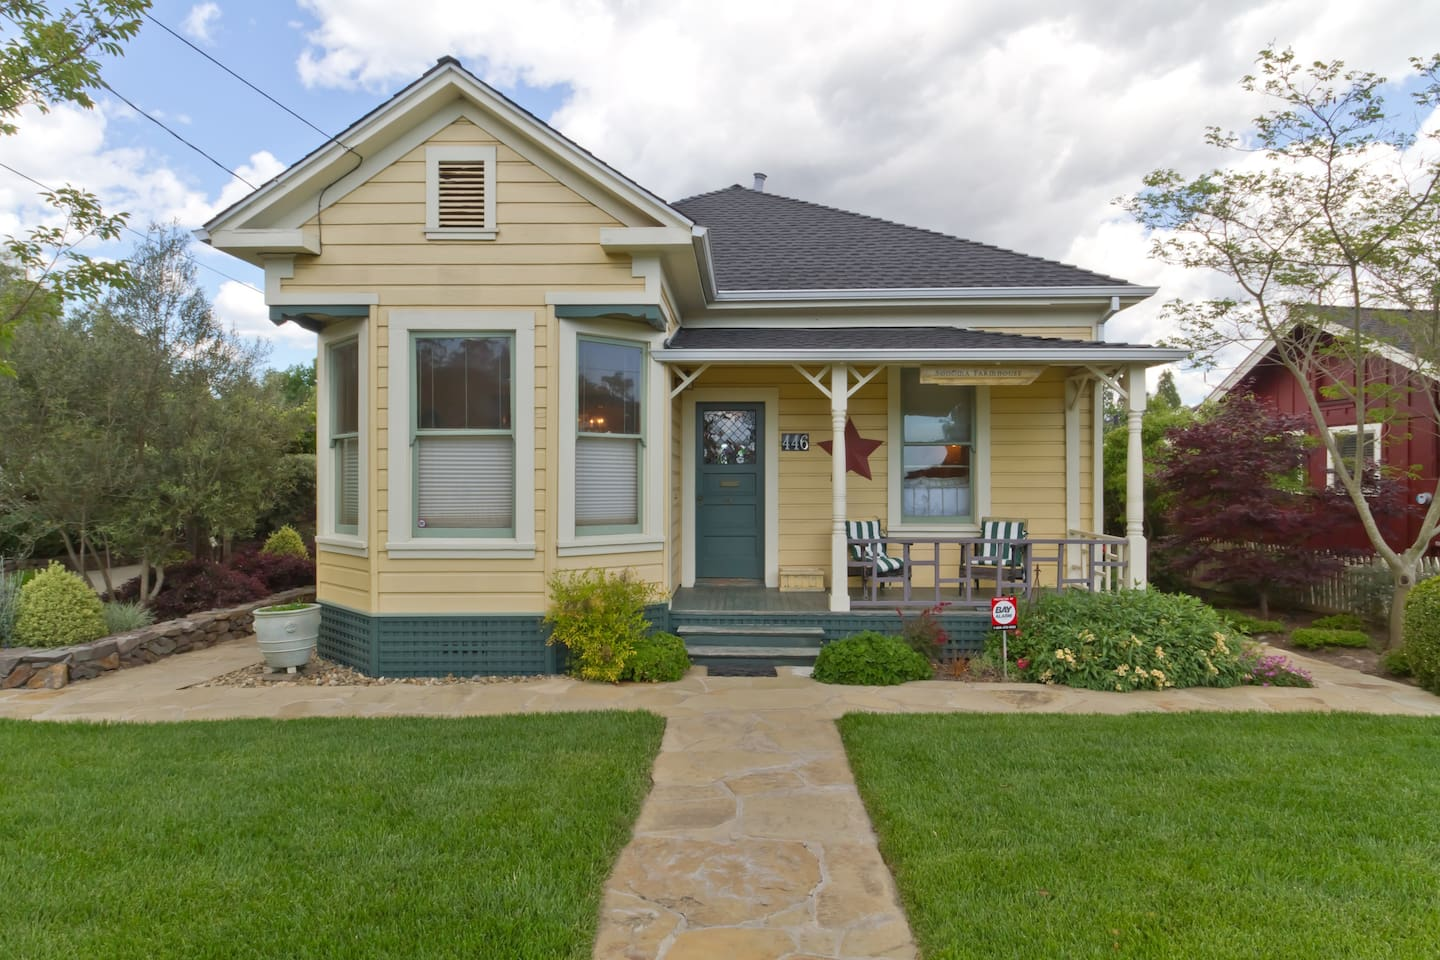 Main House - Front View of Historic Victorian Bungalow